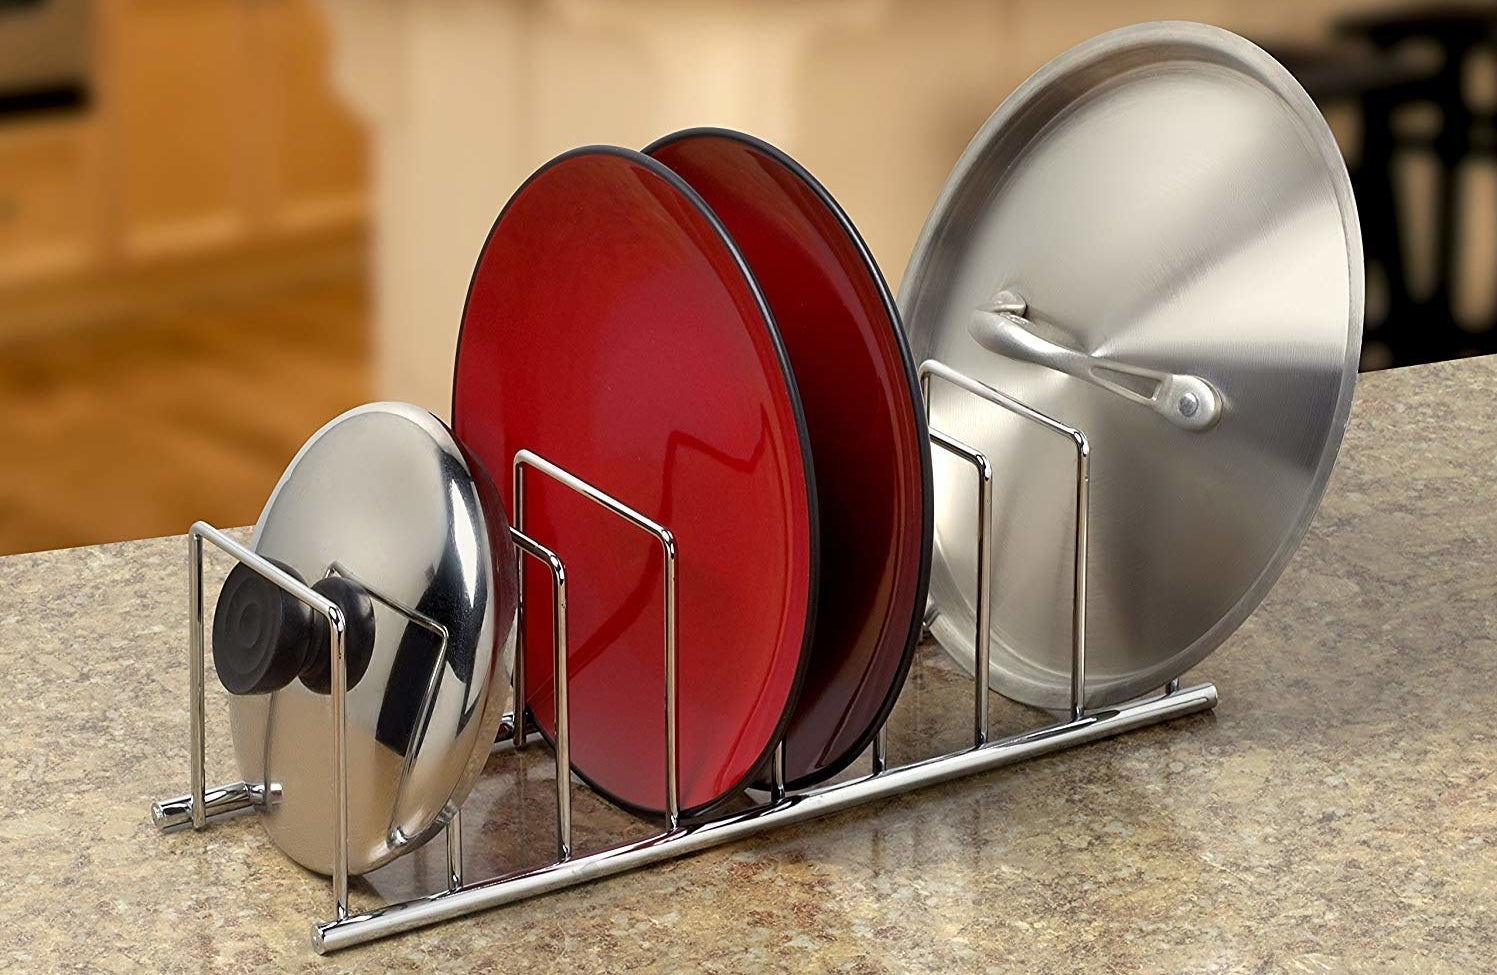 A metal rack holding a pot lid, two plates, and a pan lid of varying sizes, with four more free compartments for holding kitchenware